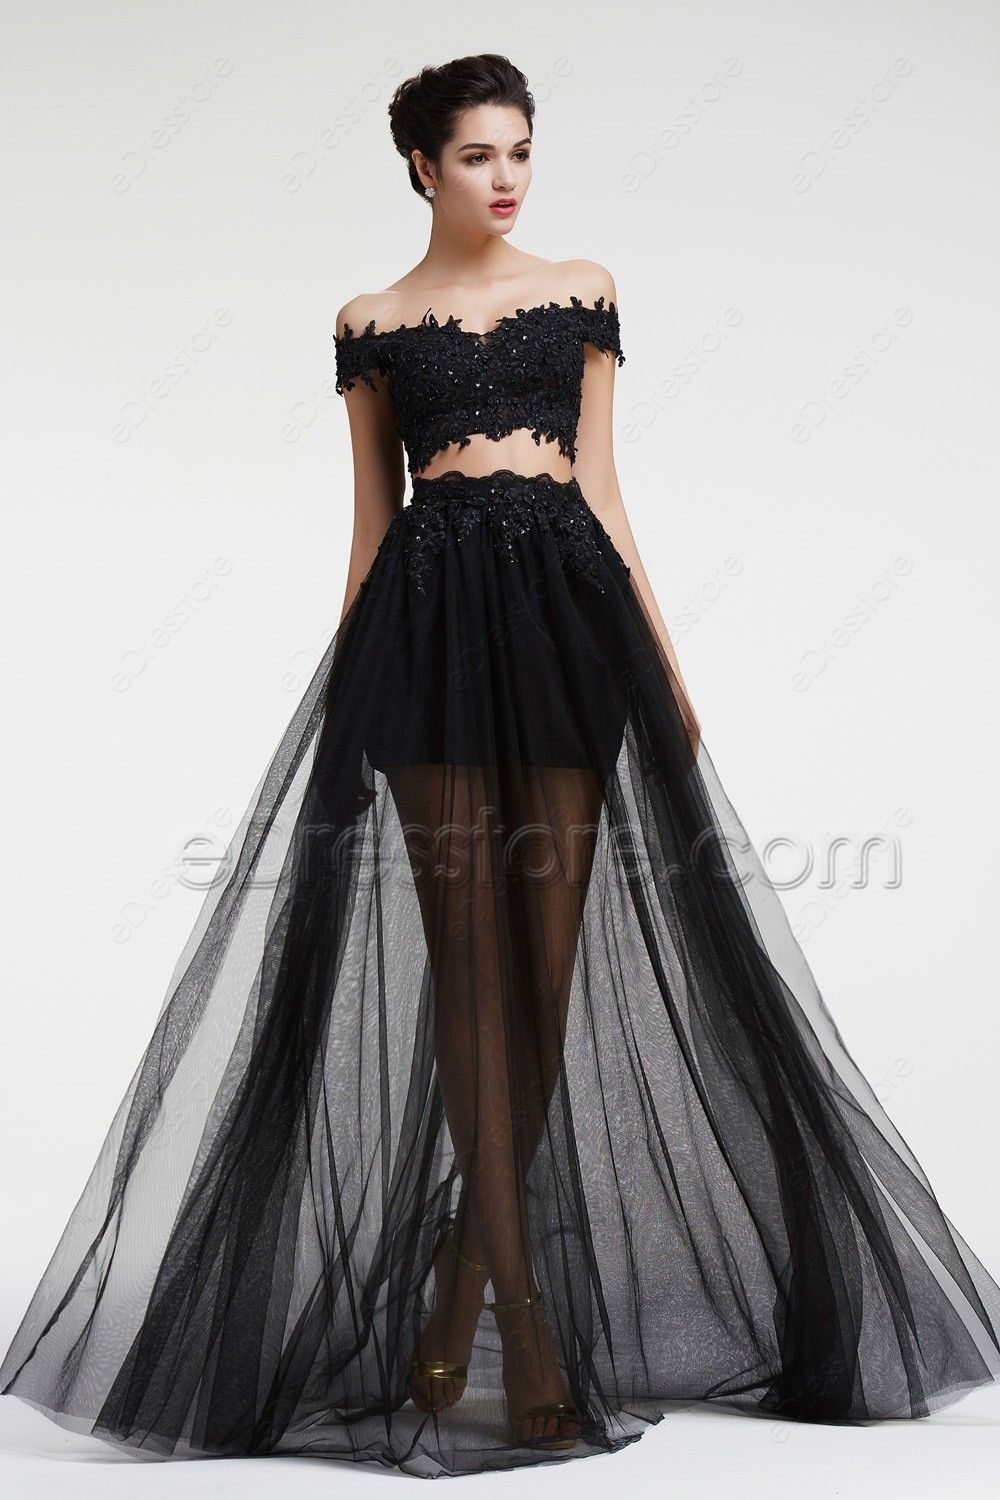 Black Lace Beaded Two Piece Prom Dresses Long Tulle